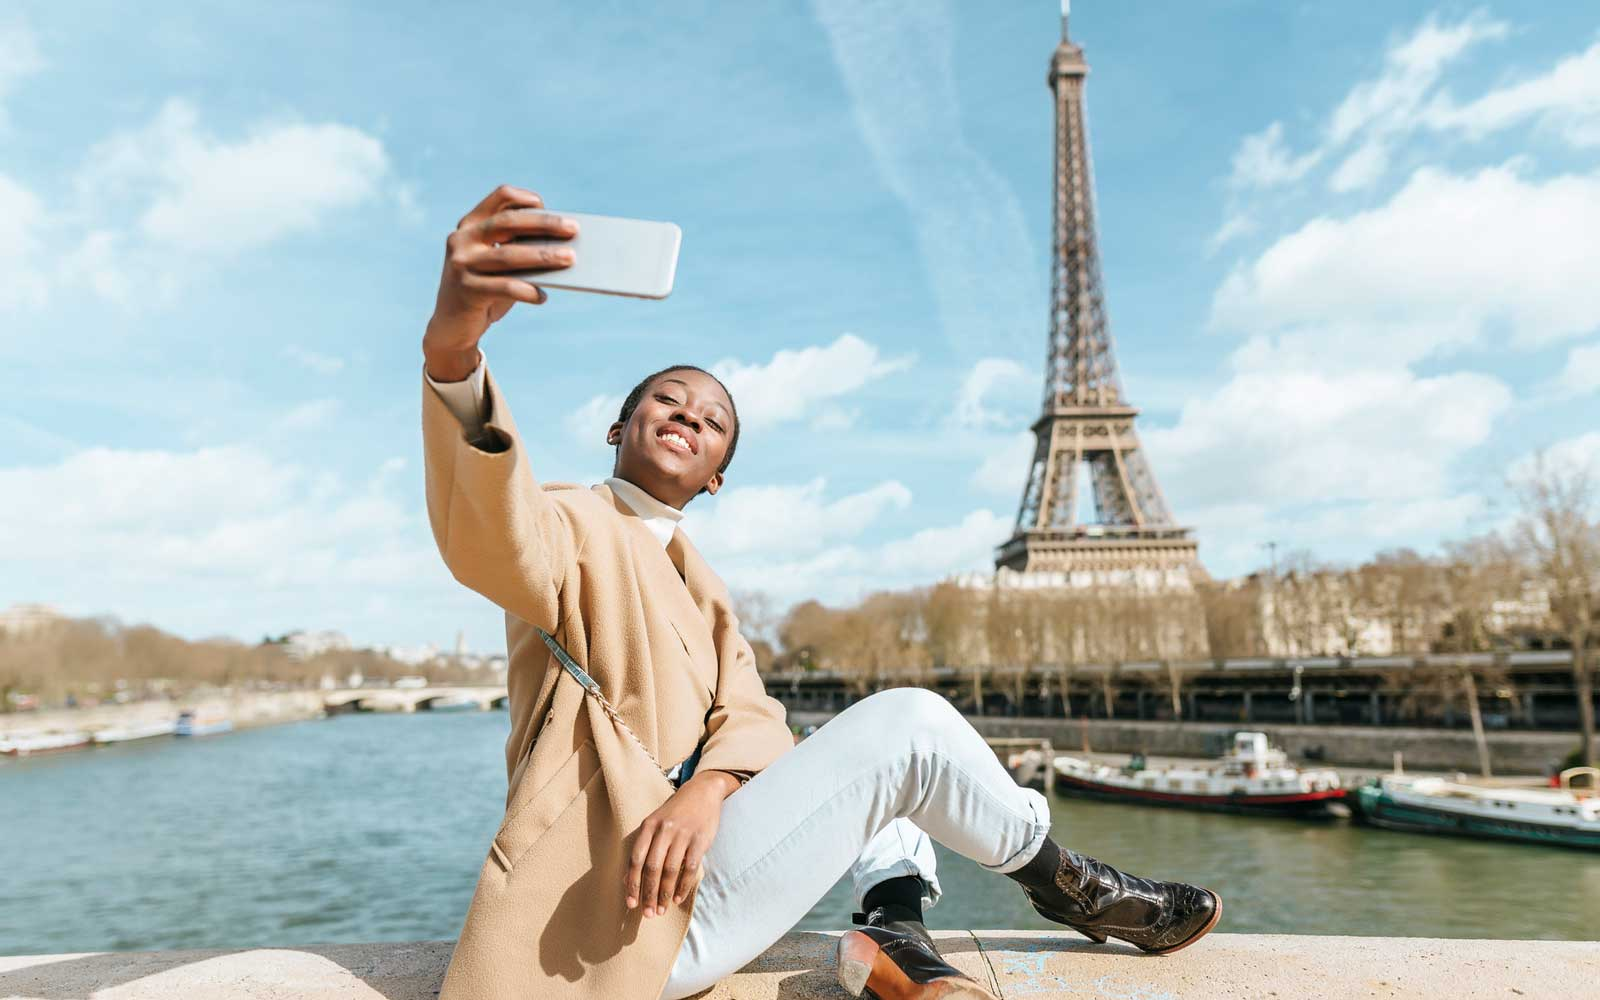 Solo traveler in Paris